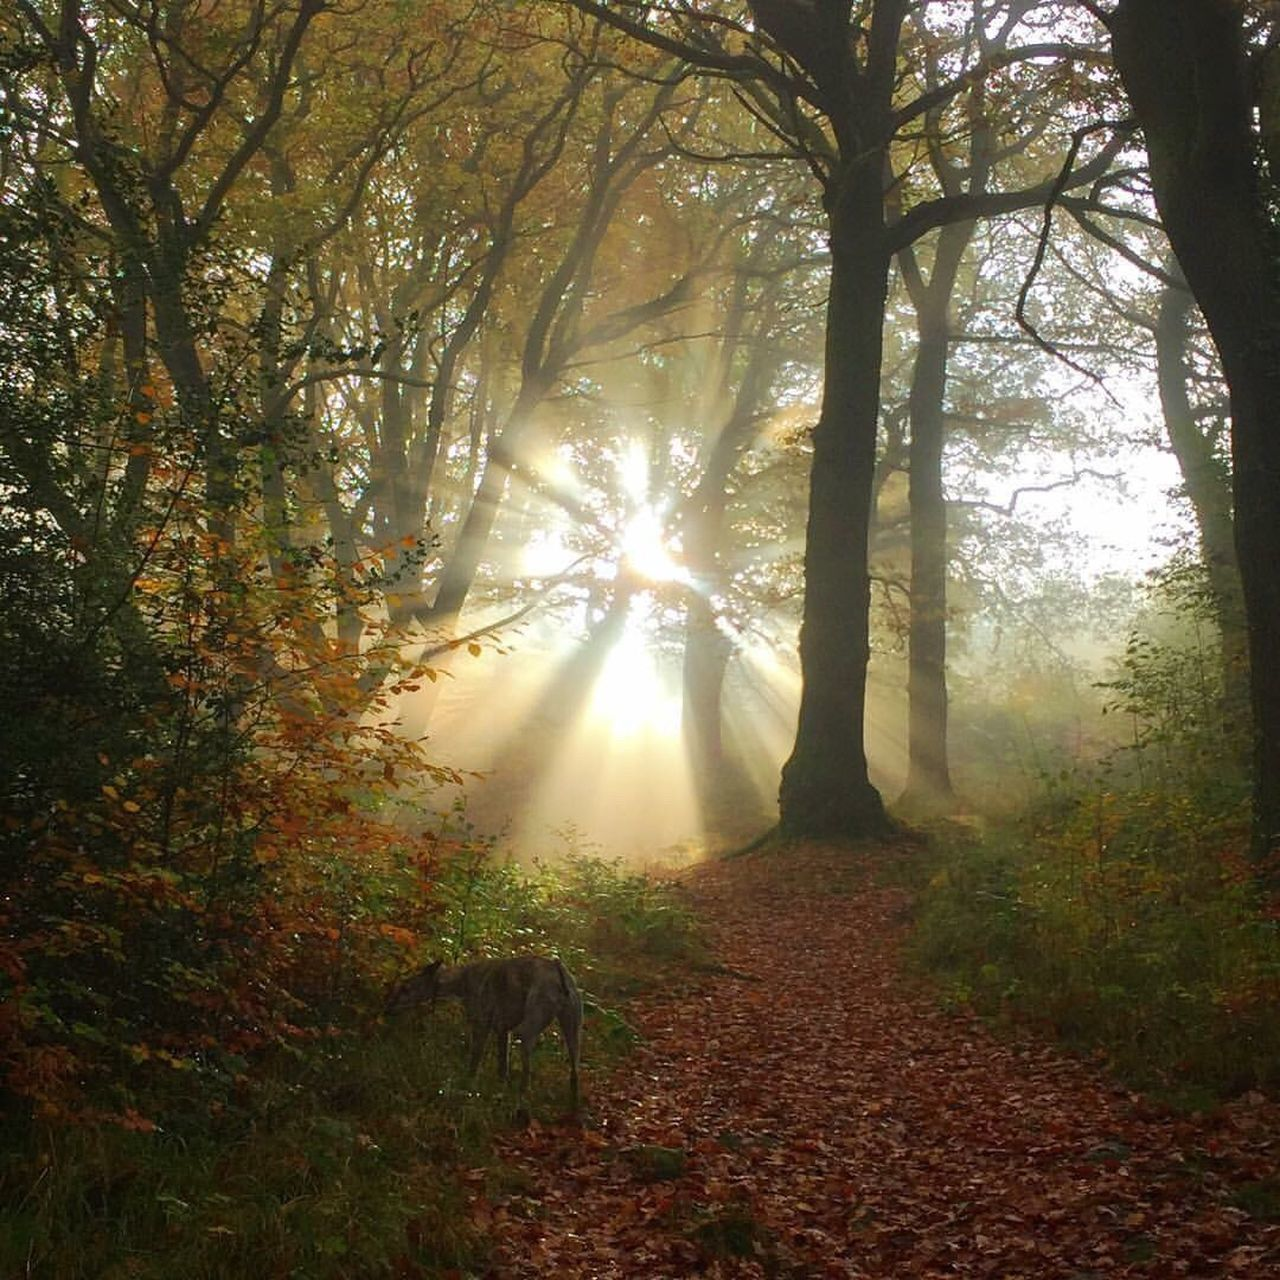 autumn, sunbeam, tree, nature, change, sunlight, tranquility, sun, forest, tranquil scene, beauty in nature, scenics, leaf, lens flare, day, branch, no people, outdoors, fog, growth